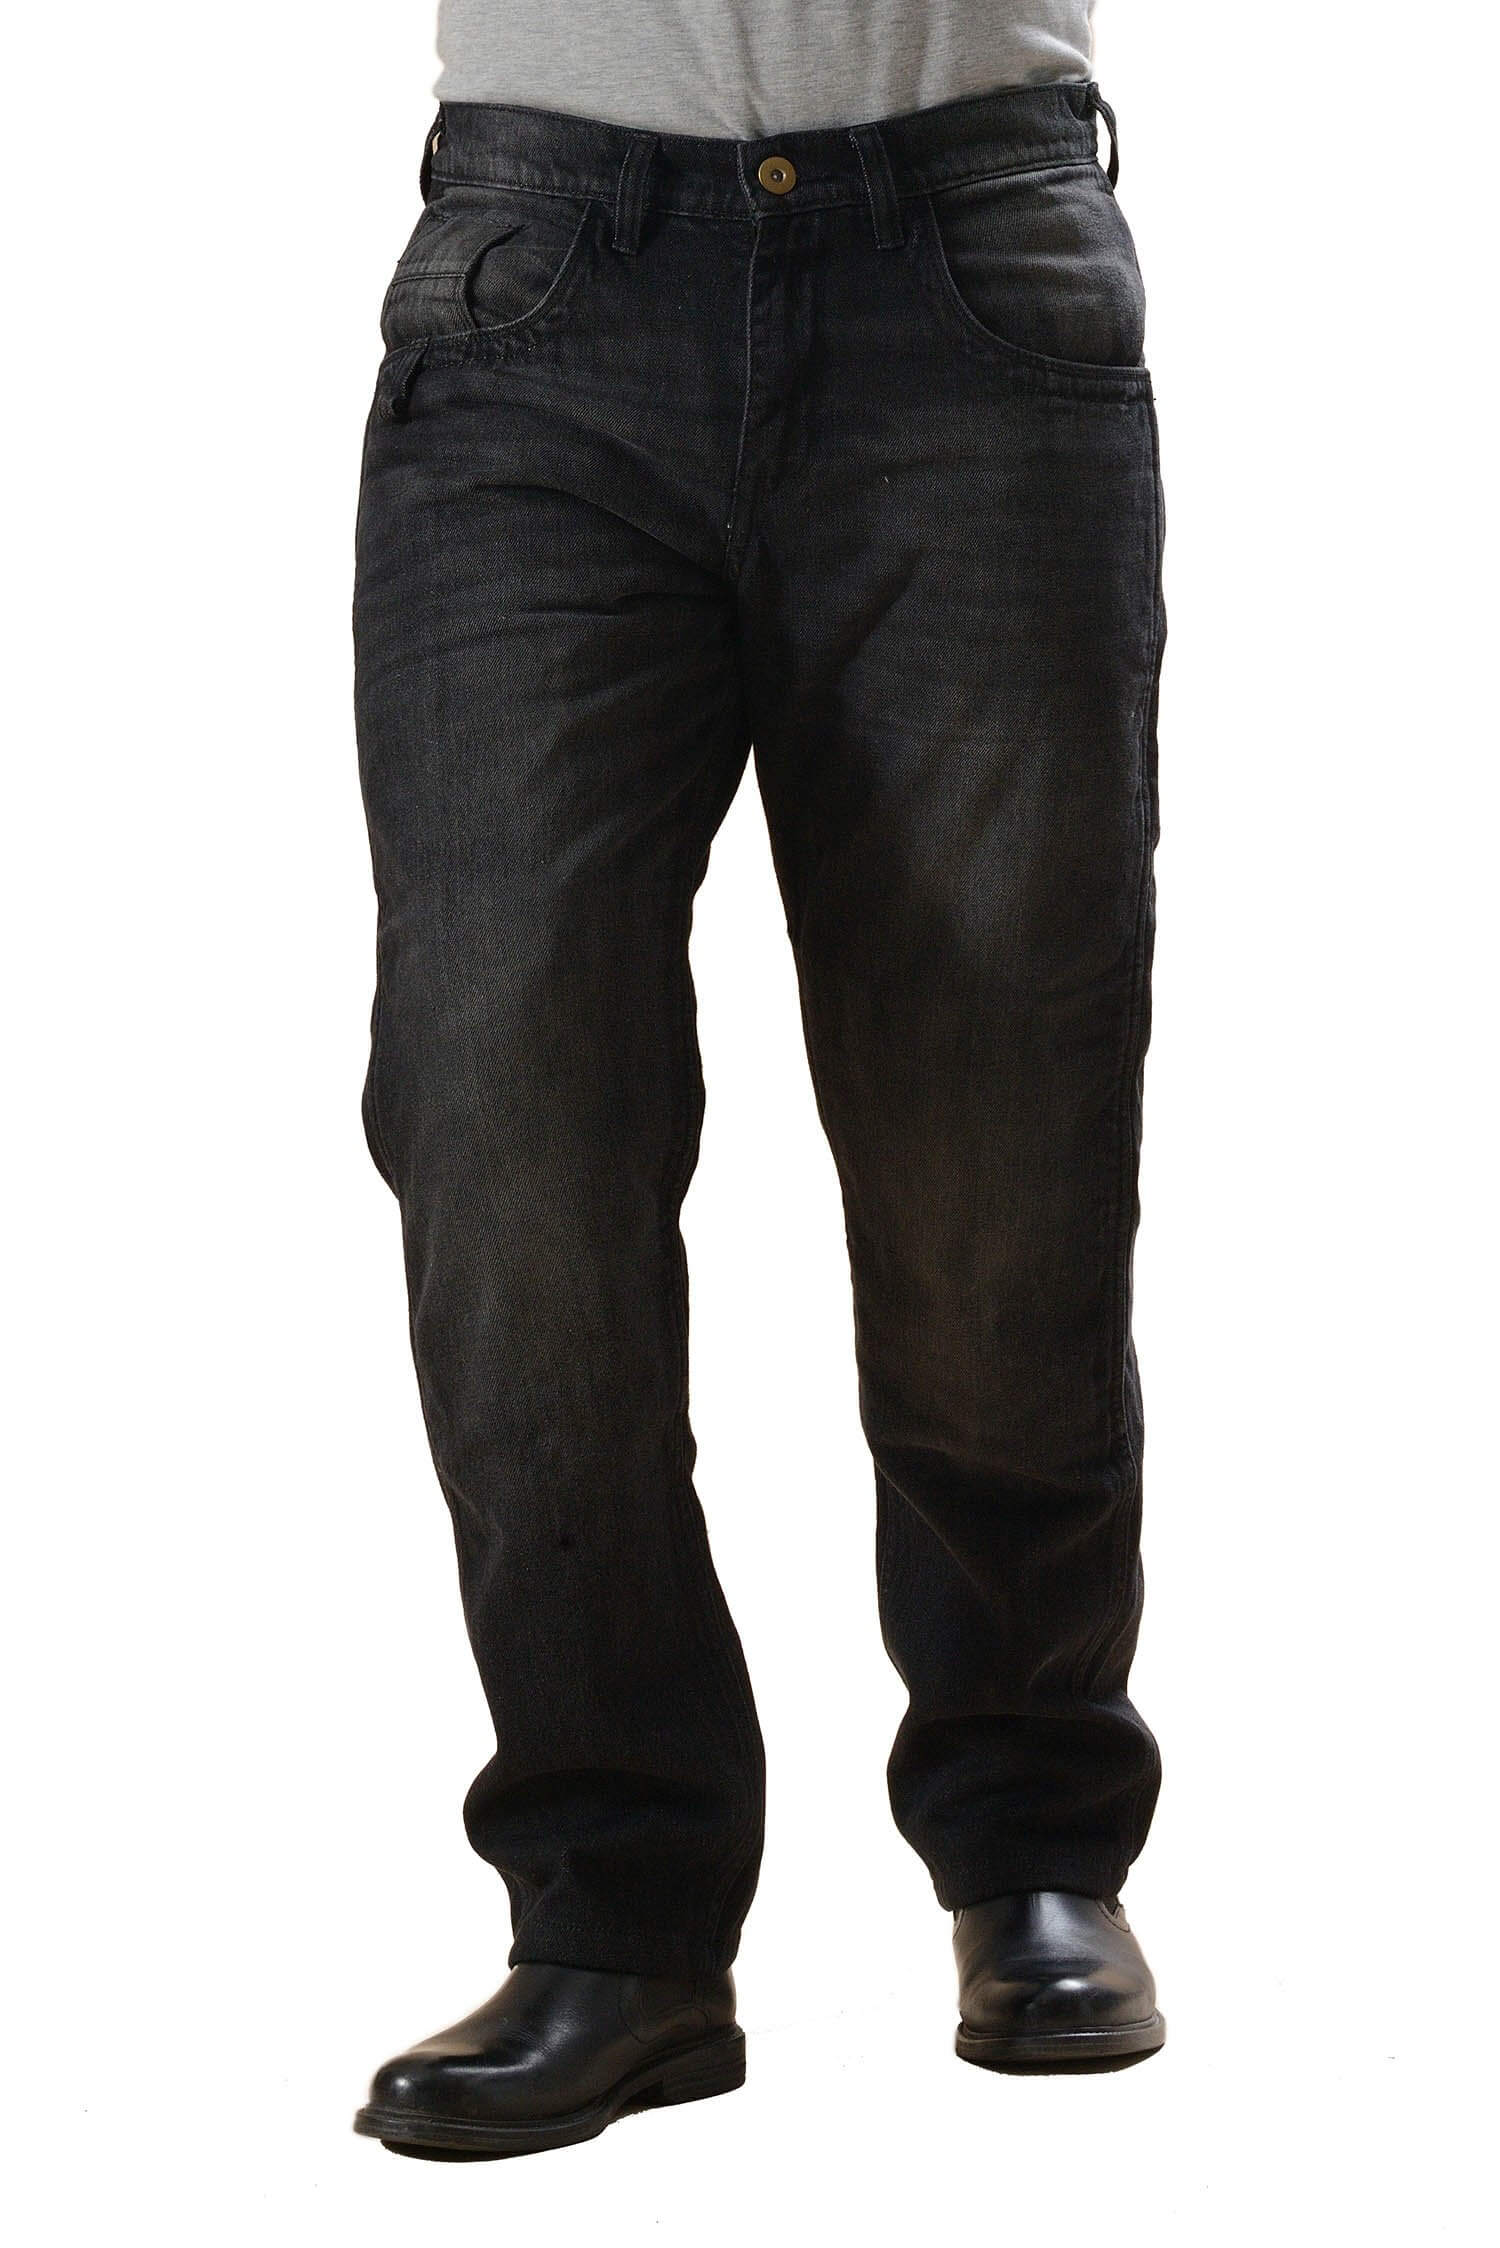 stretch-motorcycle-jeans-pants-18